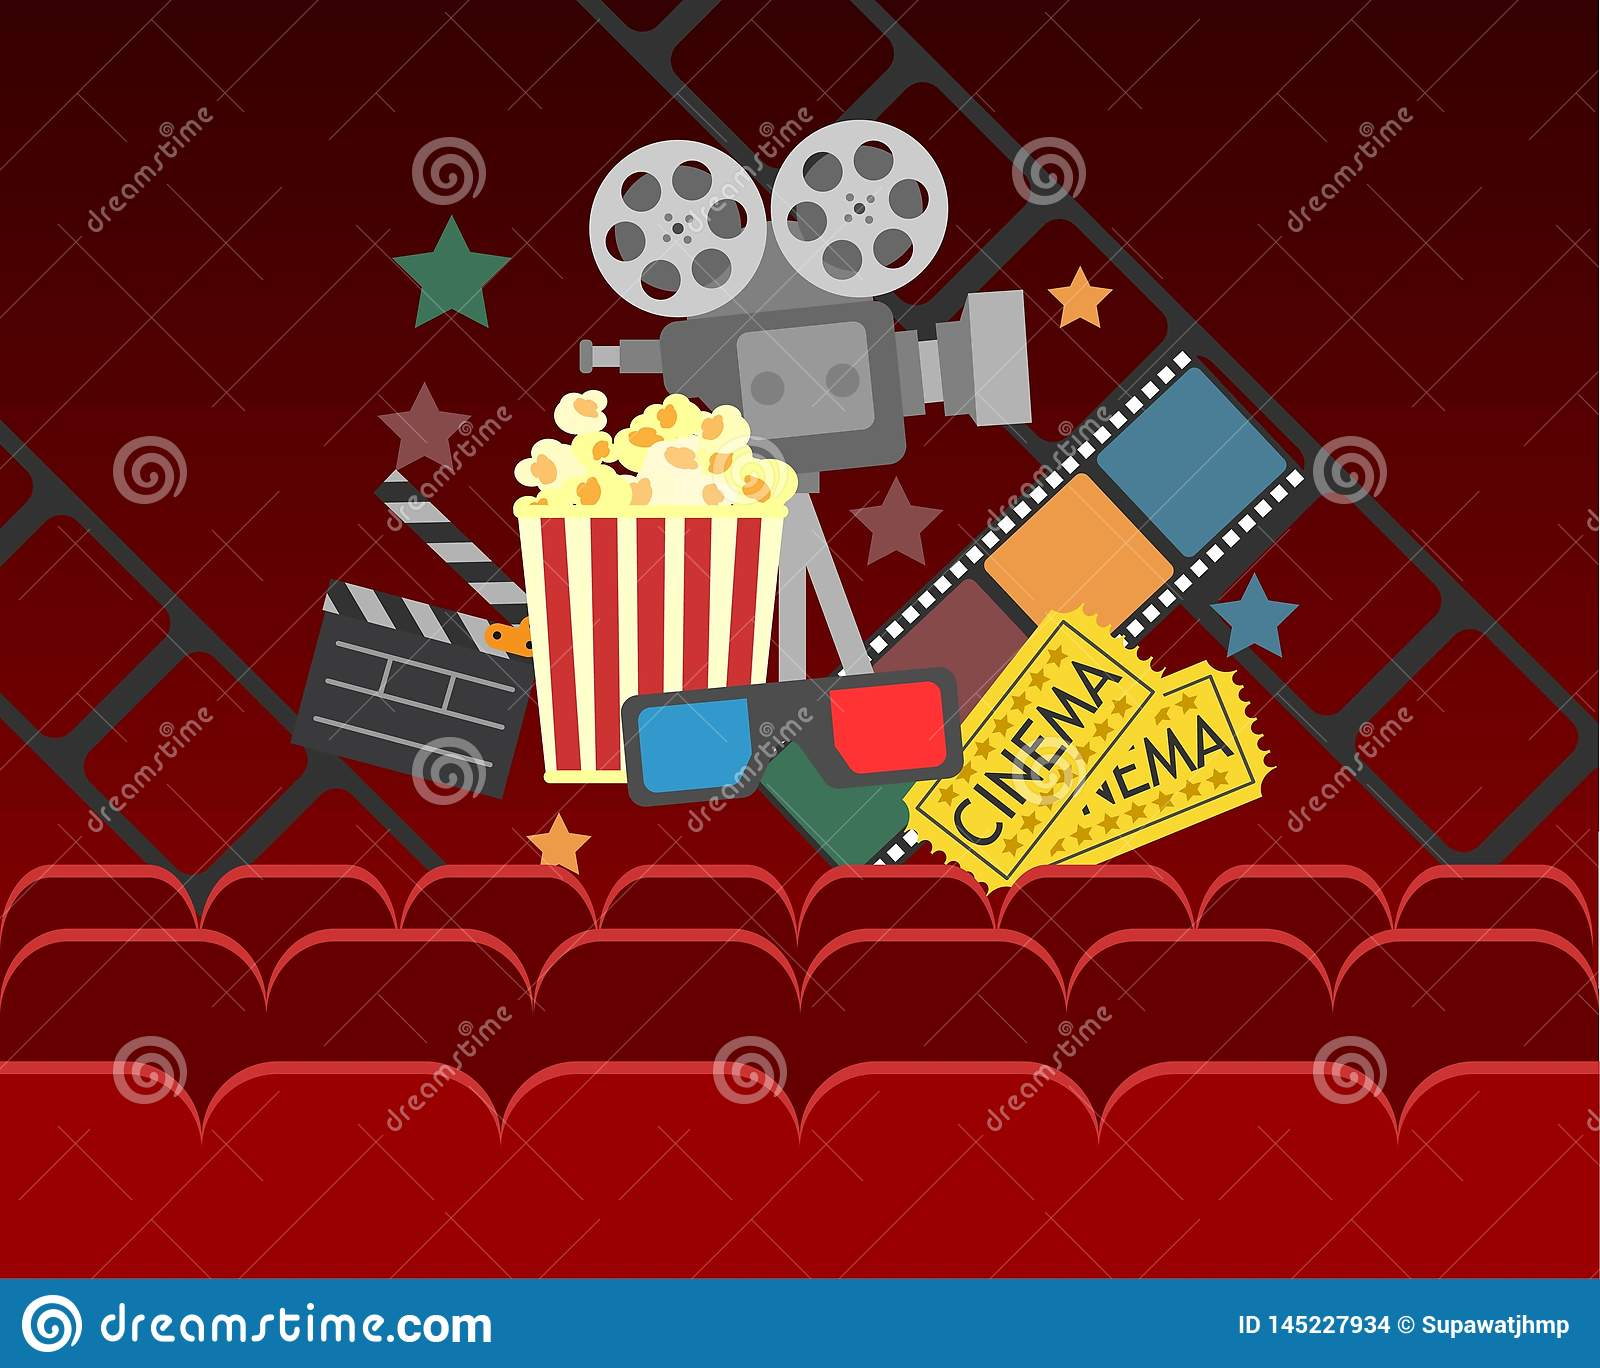 Movie cinema poster design.vector banner for show with curtains,seats,popcorn, tickets